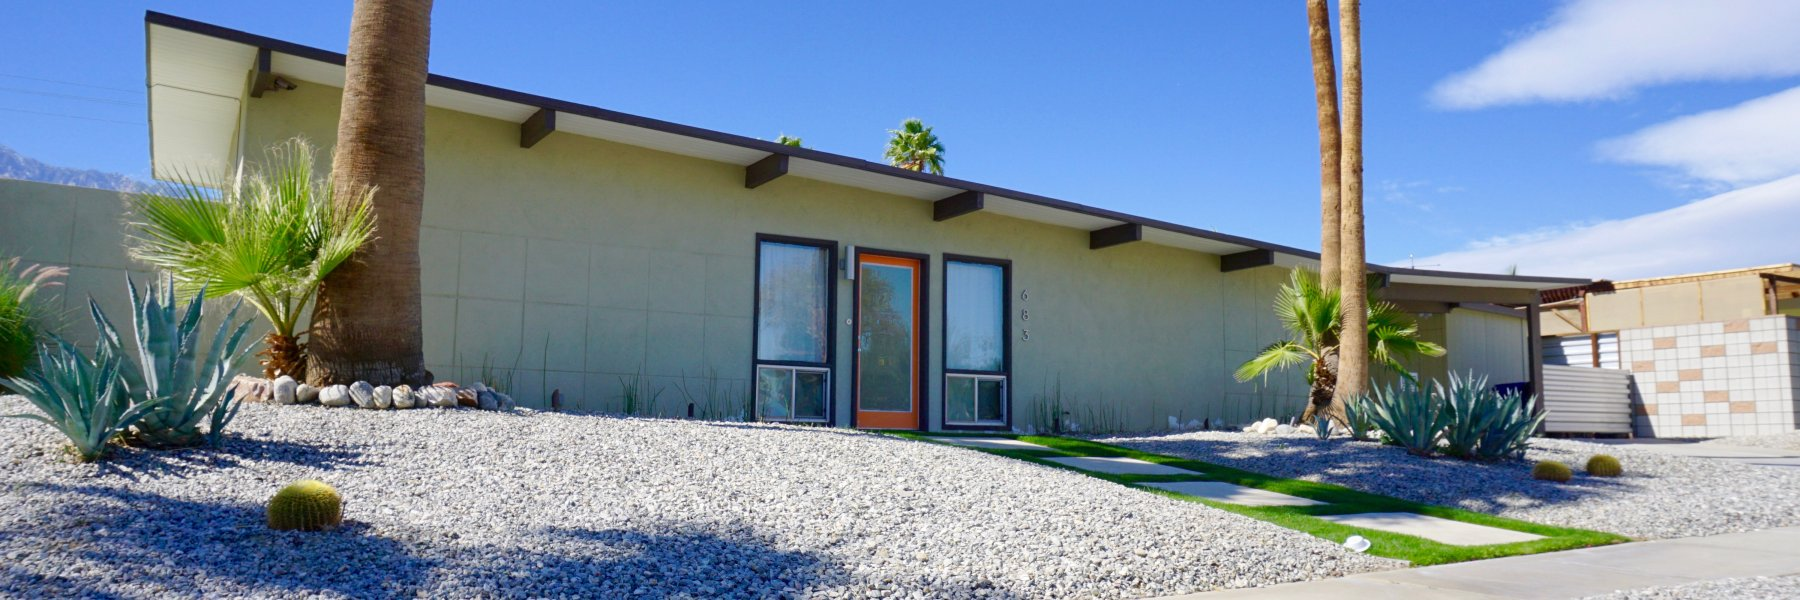 Sun Villas is a community of homes in Palm Springs California